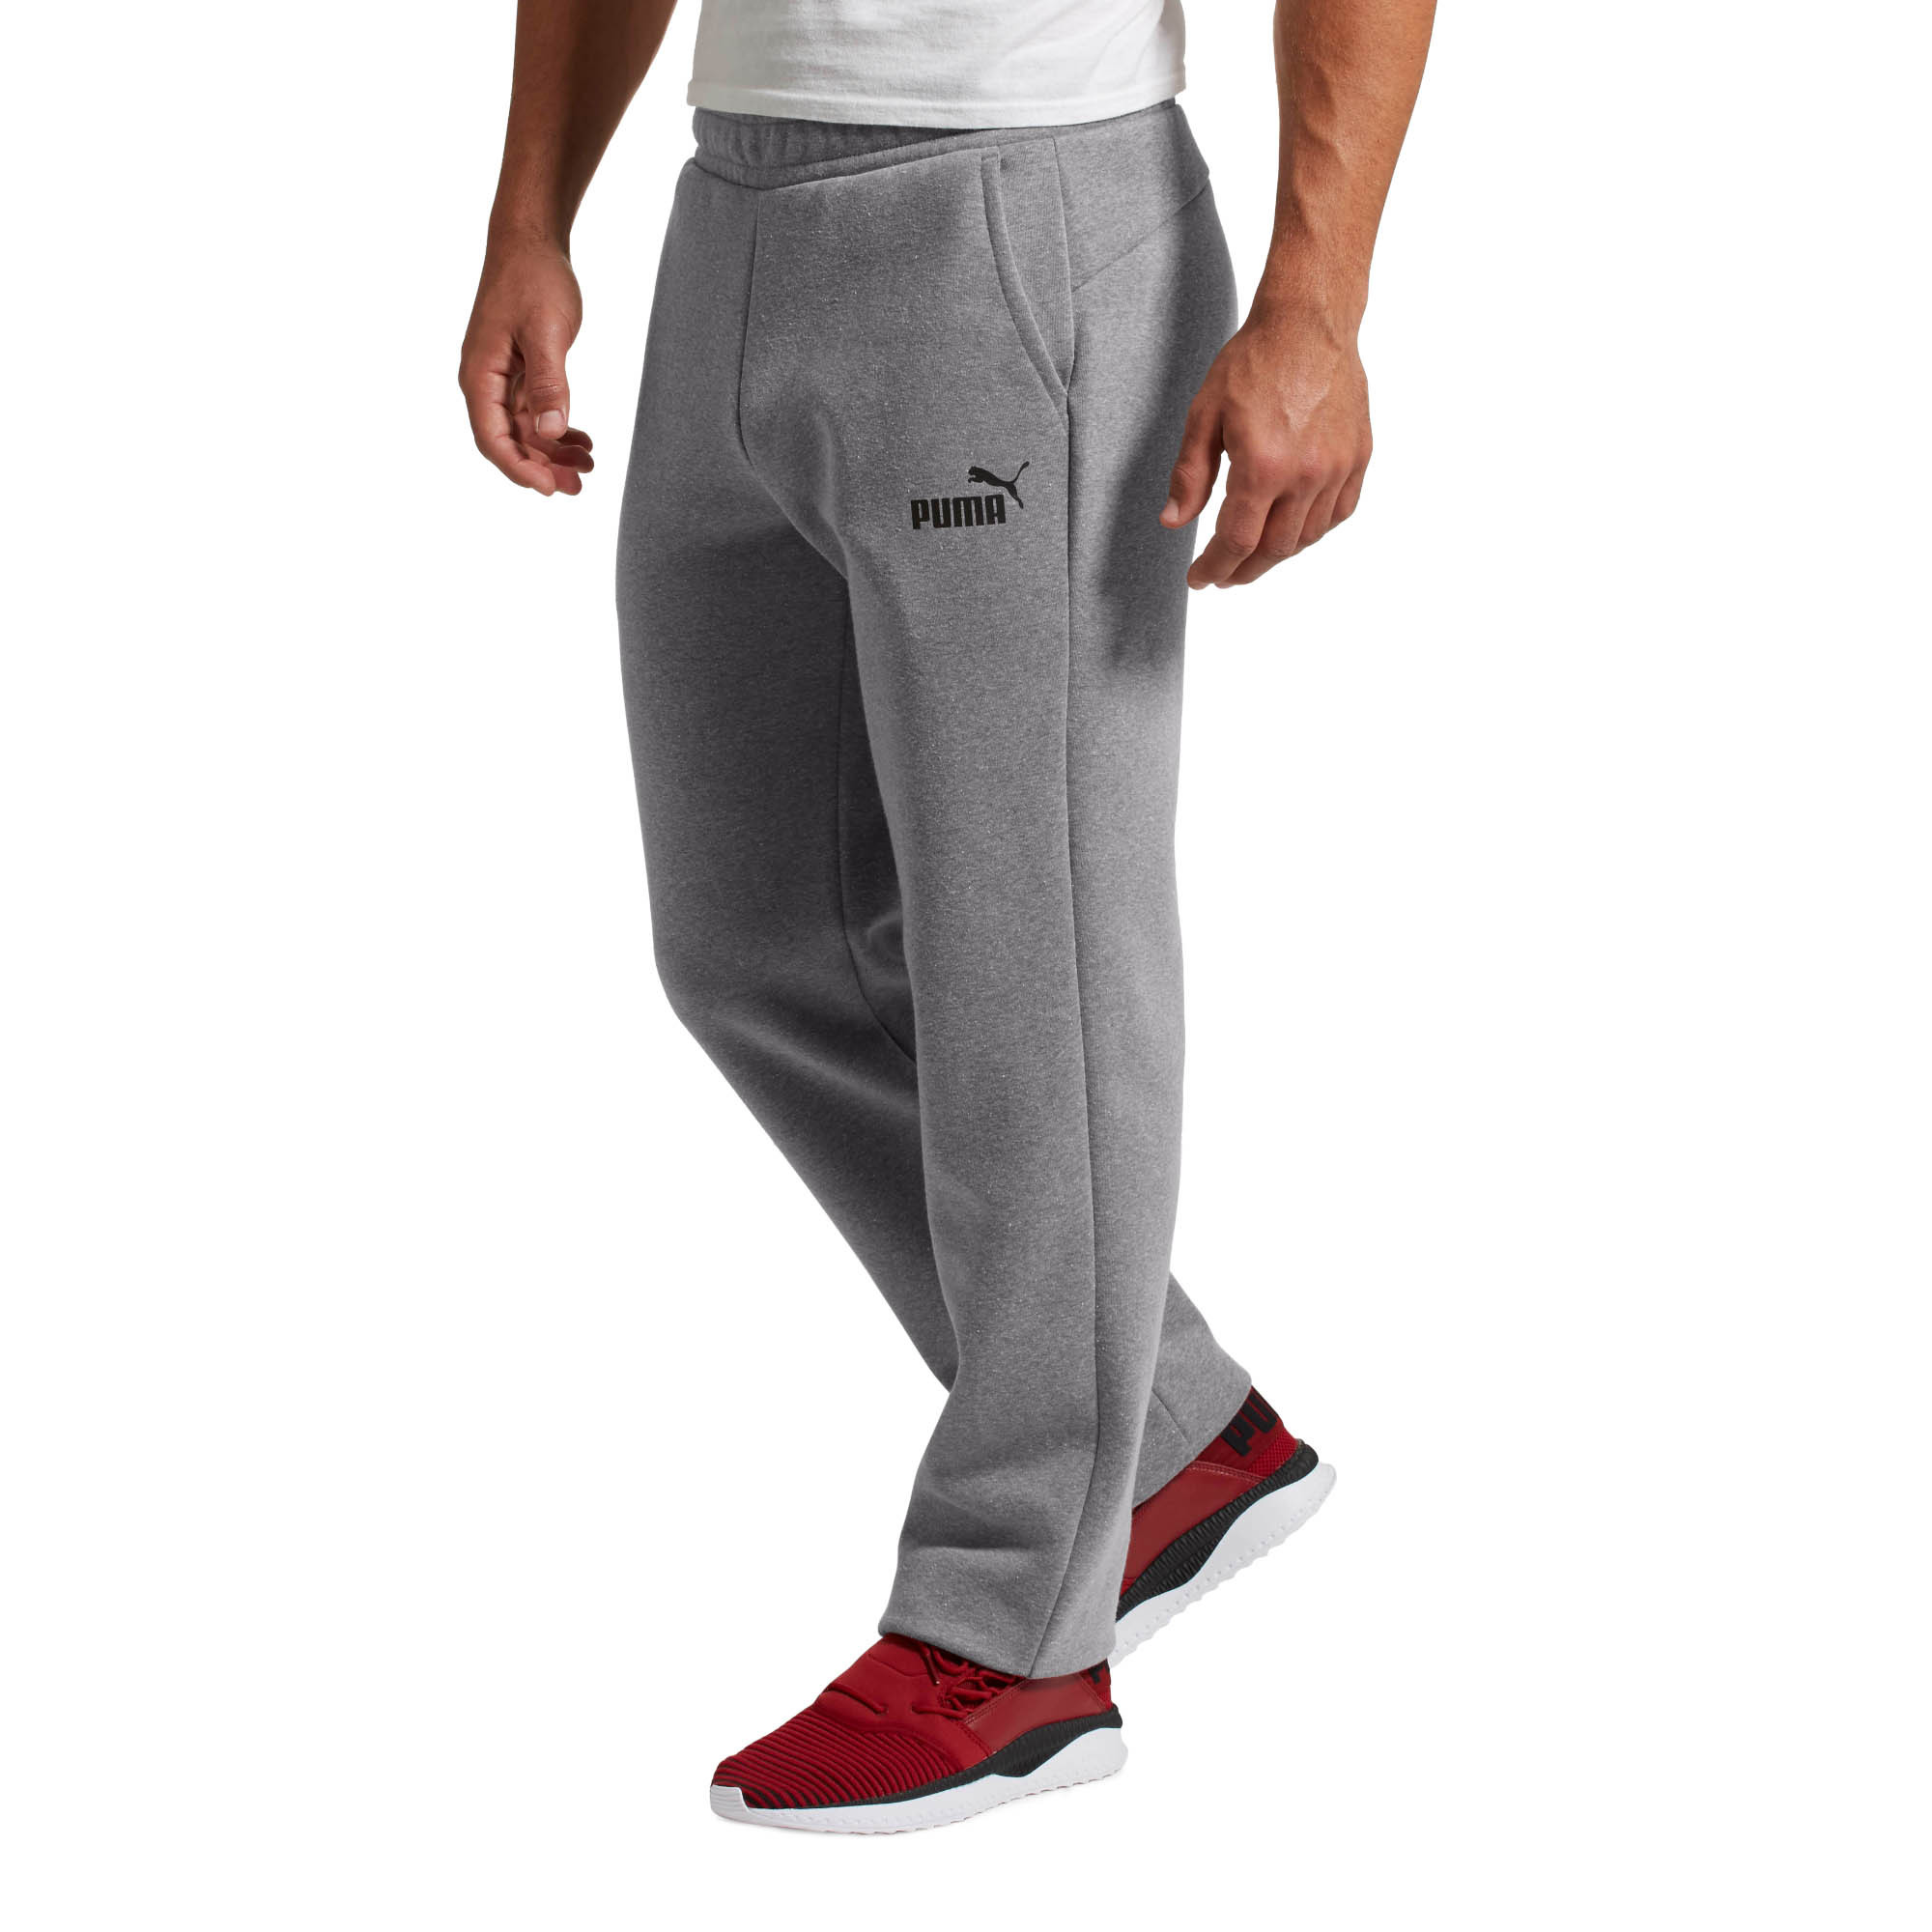 PUMA-Eseential-Logo-Full-Length-Pants-Men-Knitted-Pants-Basics thumbnail 3